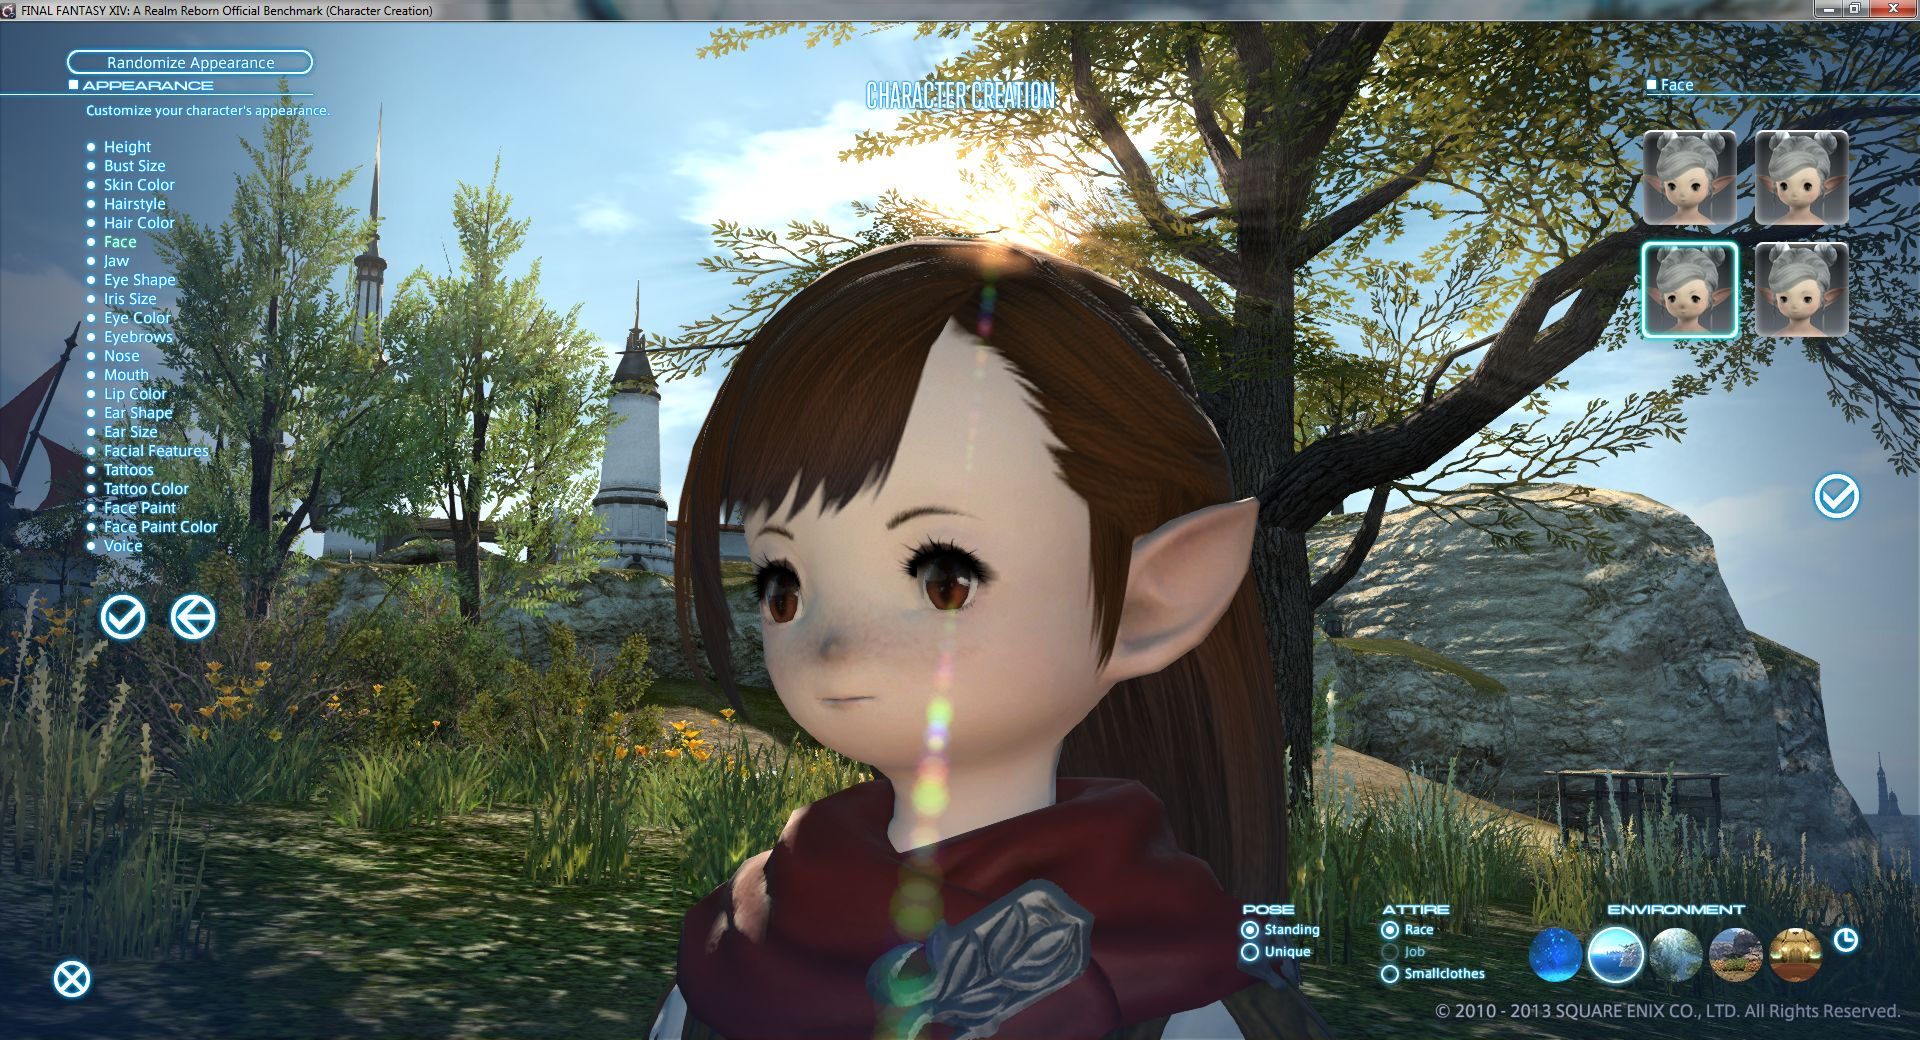 nep ffxiv this hair ffxi character like color what green more help pinkish look akin cause laughing stop cannot eyesmouth expression website official best here found also actually match recreating grown accustomed quite personally pictures your benchmark going heres style just char post slightly darker edit2 pinkredish